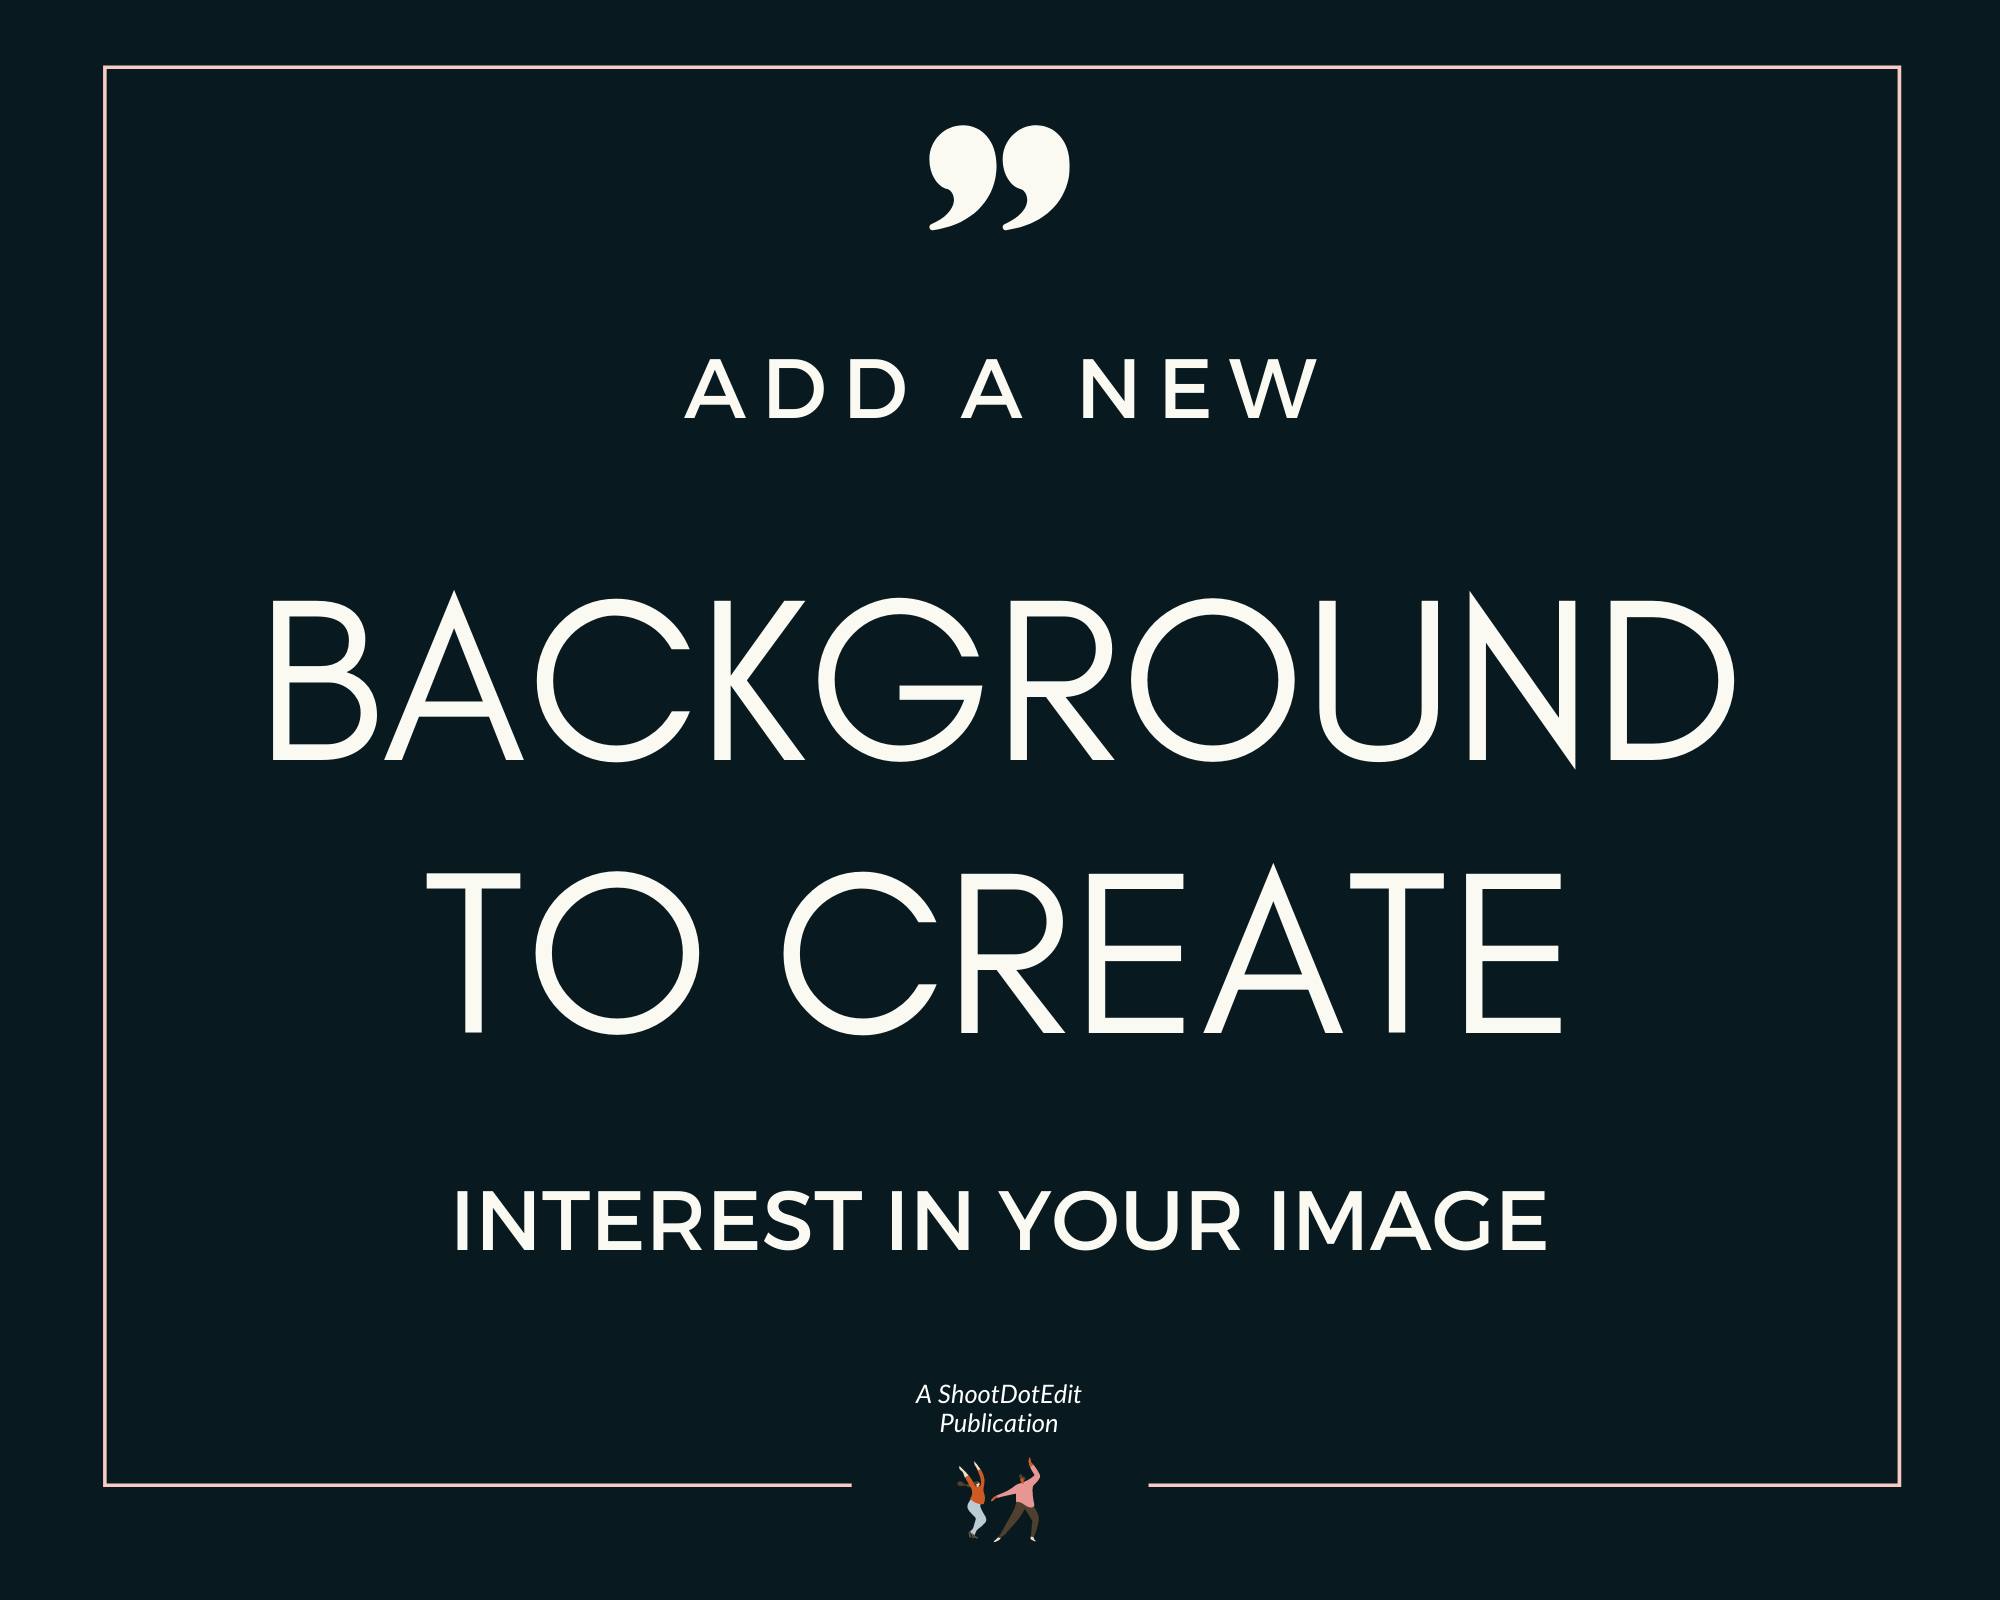 Infographic stating add a new background to create interest in your image